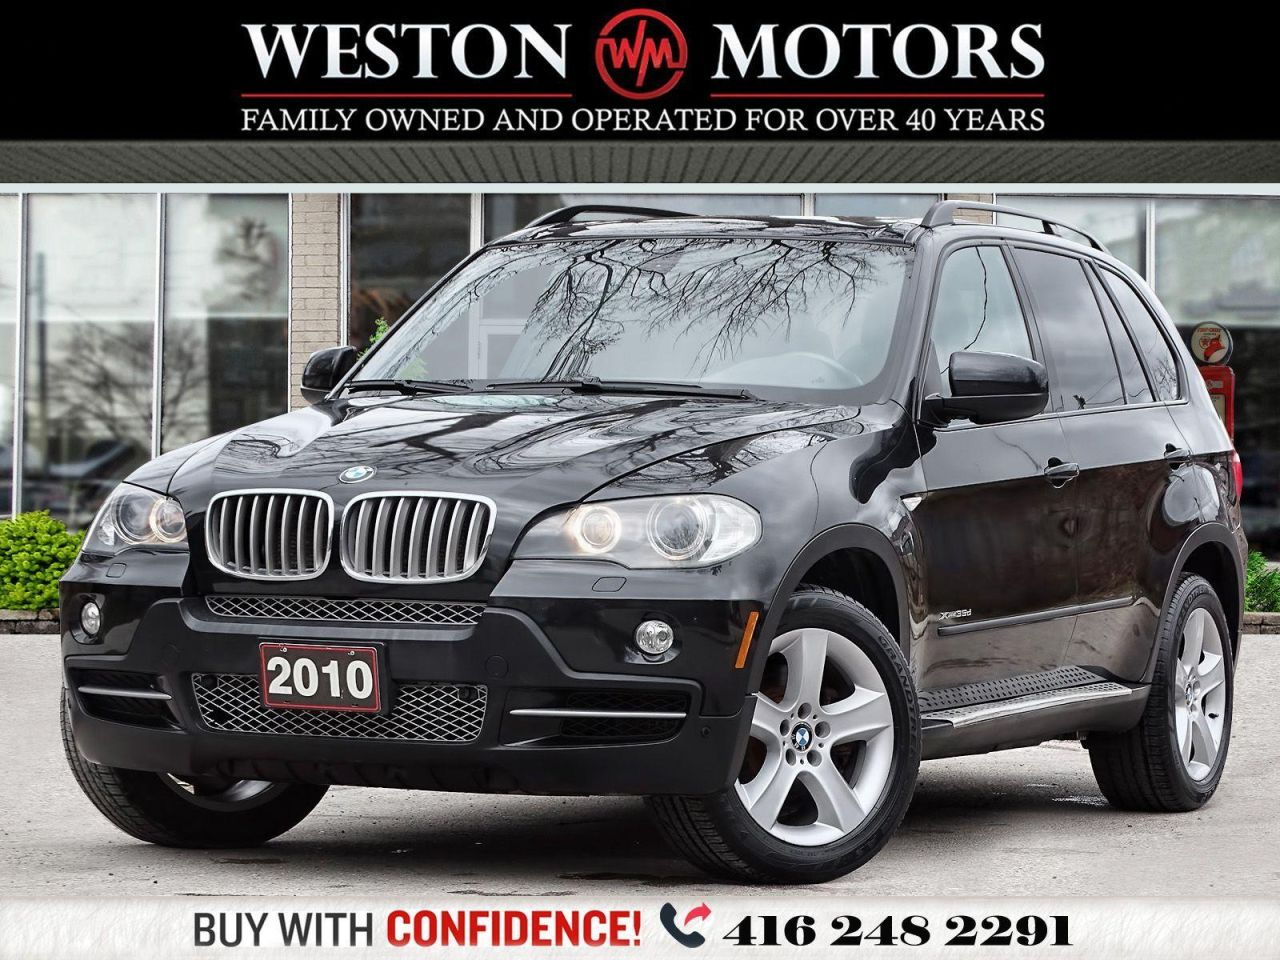 2010 BMW X5 XDRIVE*35D*NAVI*LEATHER*PAN AM SUNROOF*DIESEL!!*